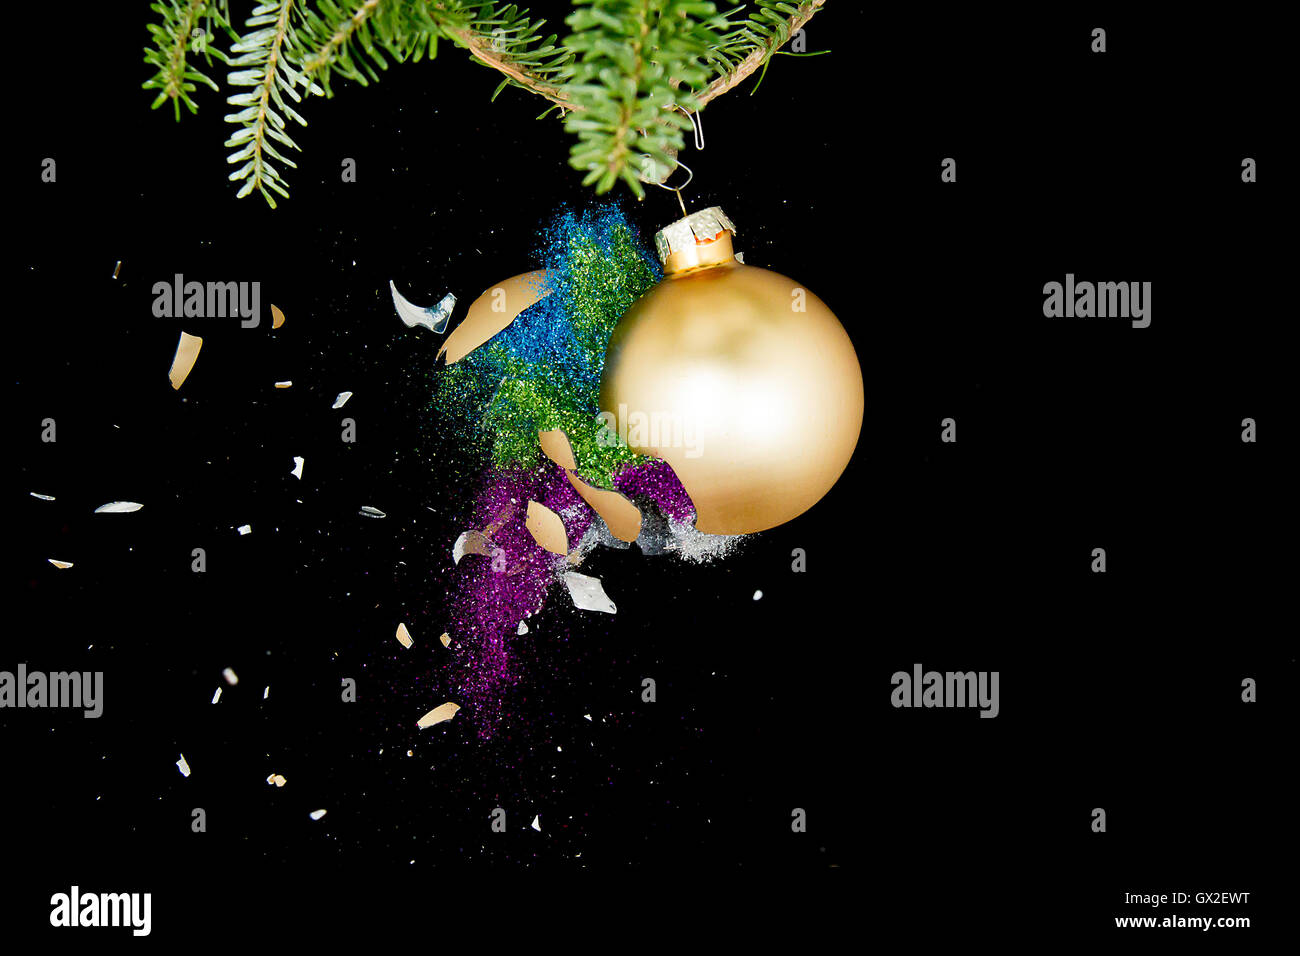 Christmas ball exploding. Colored glitters falling. - Stock Image